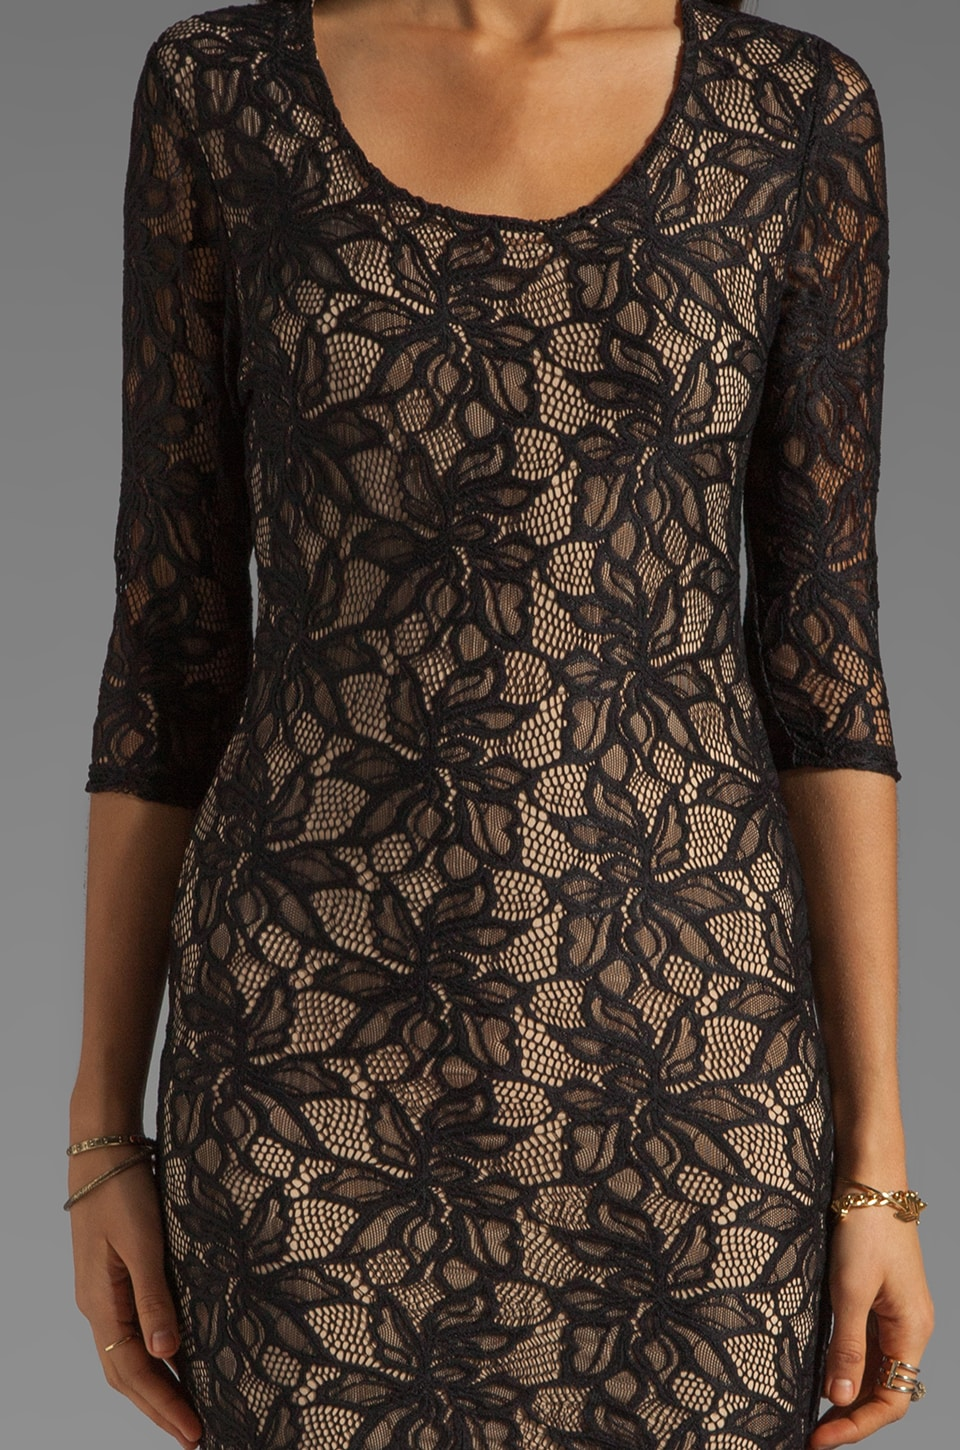 Lovers + Friends Sway Dress in Black Lace